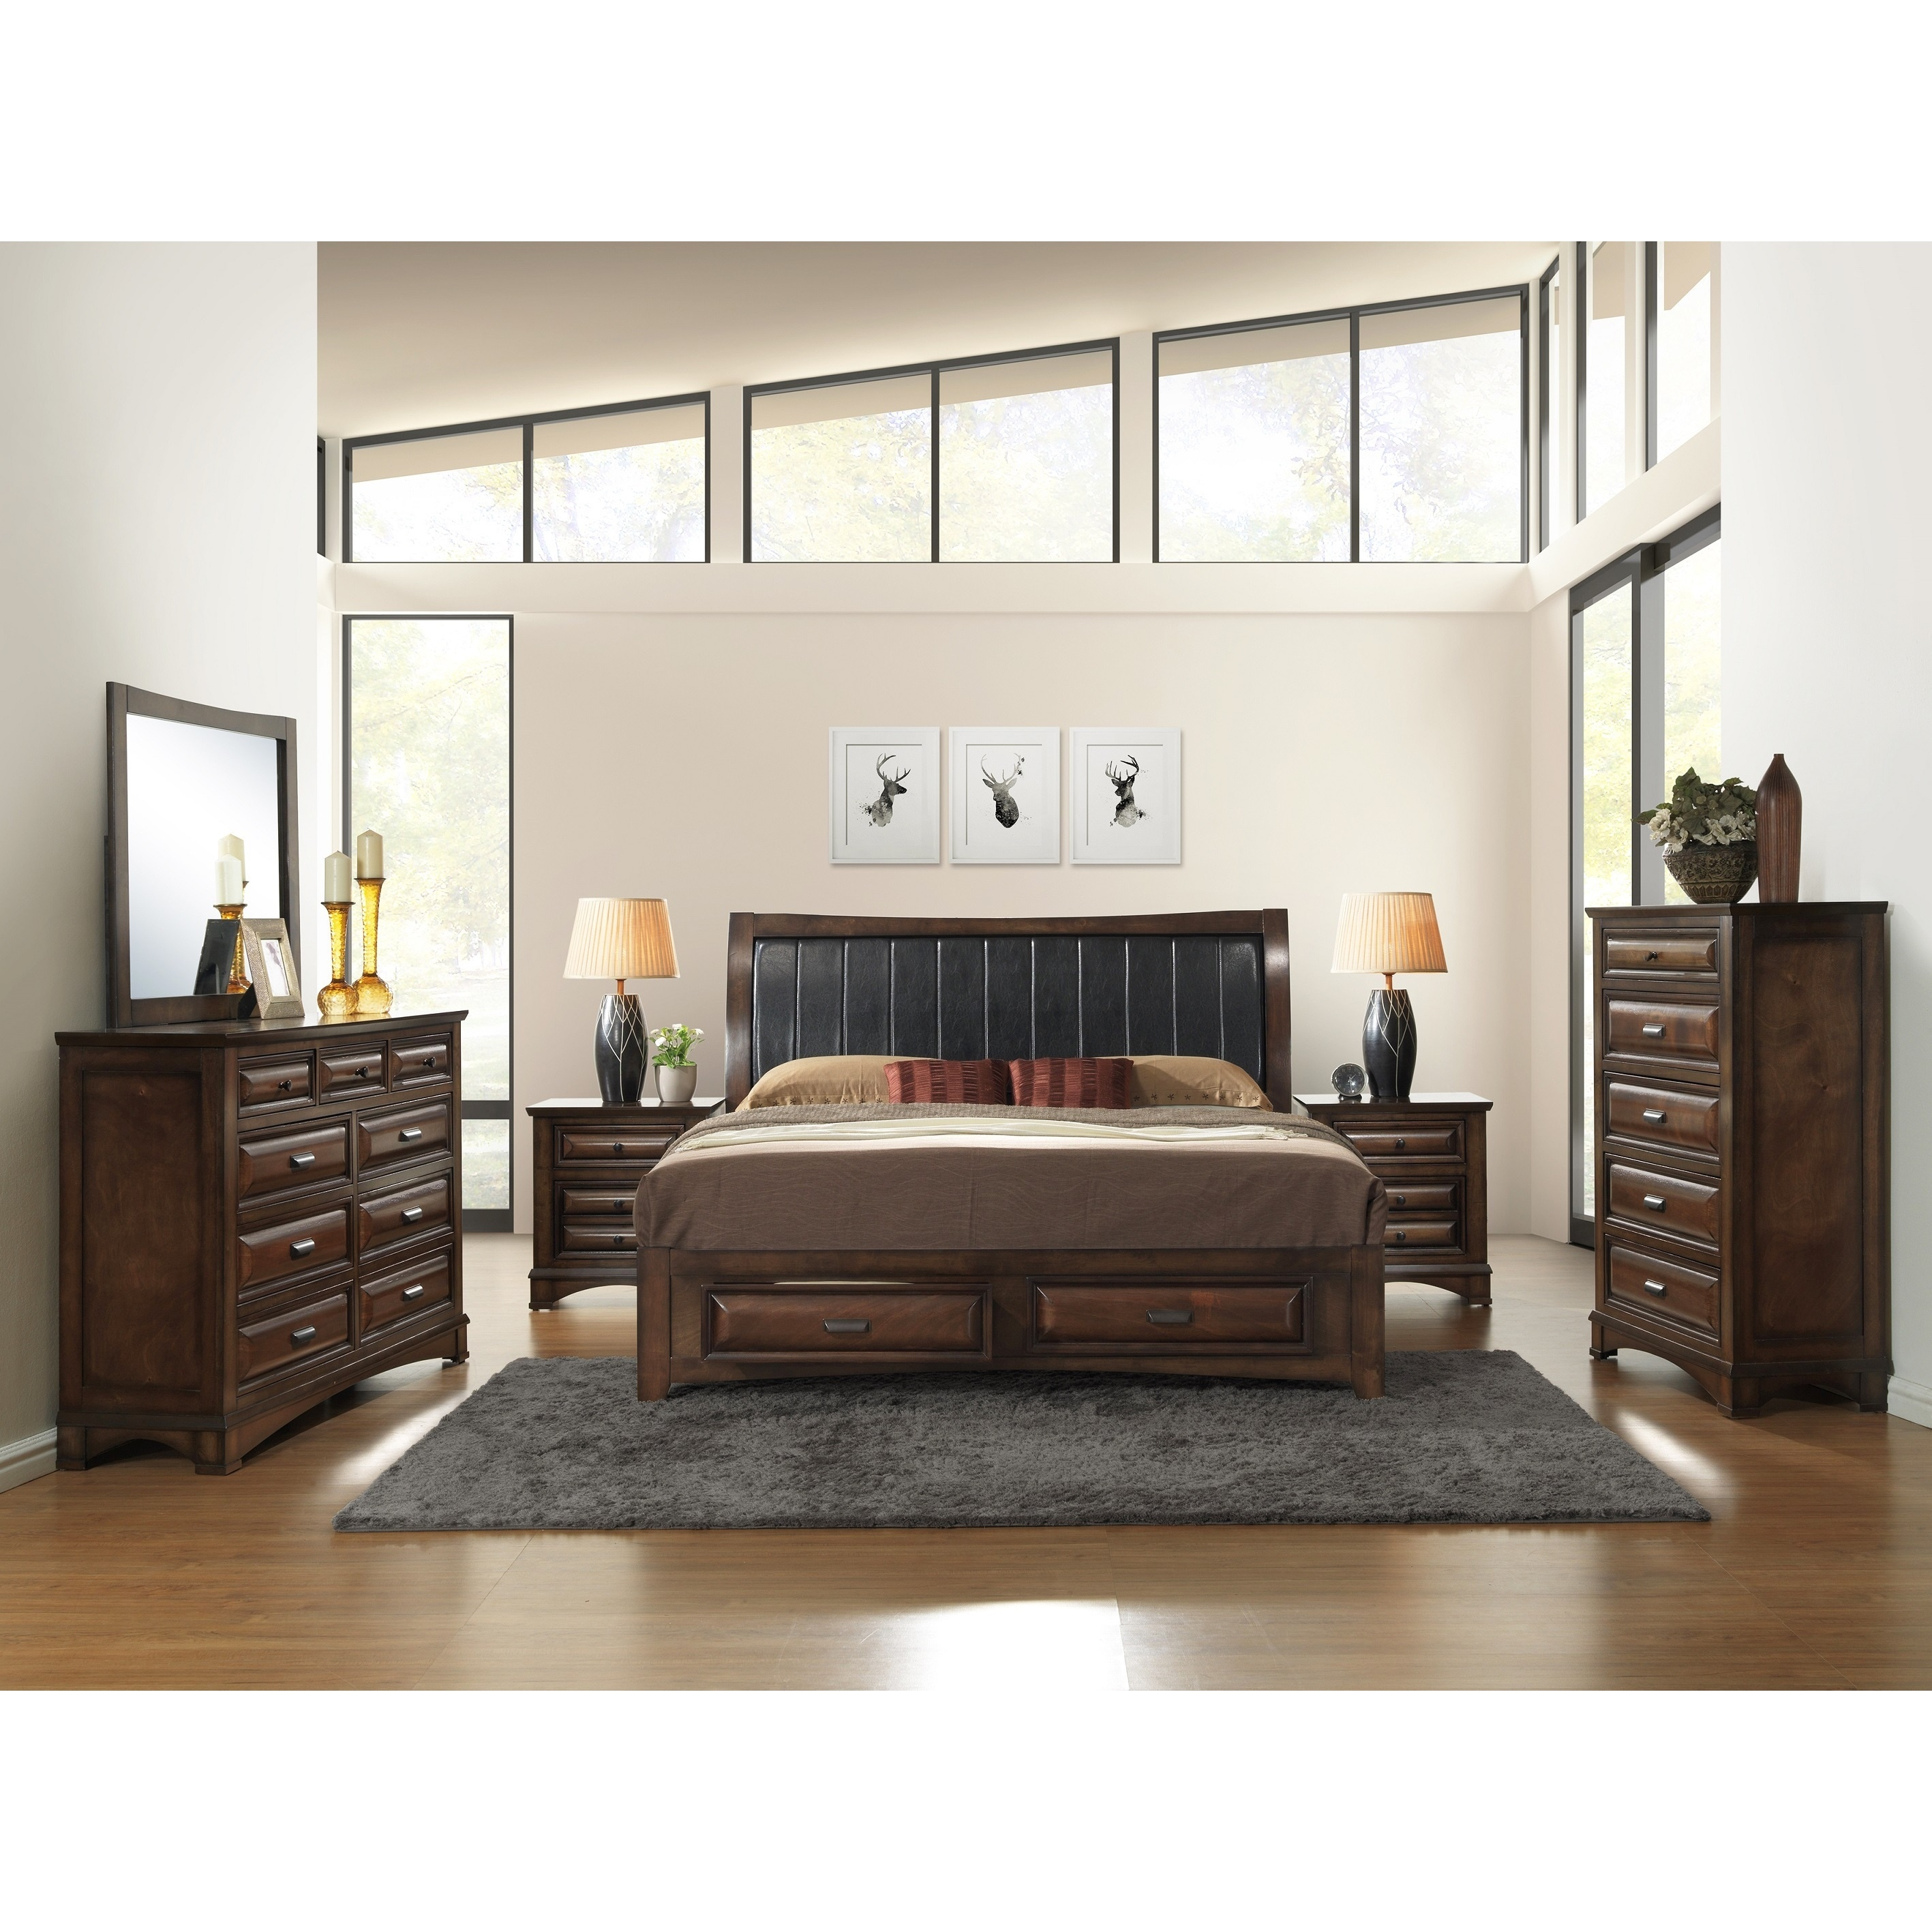 Shop Broval 179 6-piece Light Espresso Finish Wood Queen